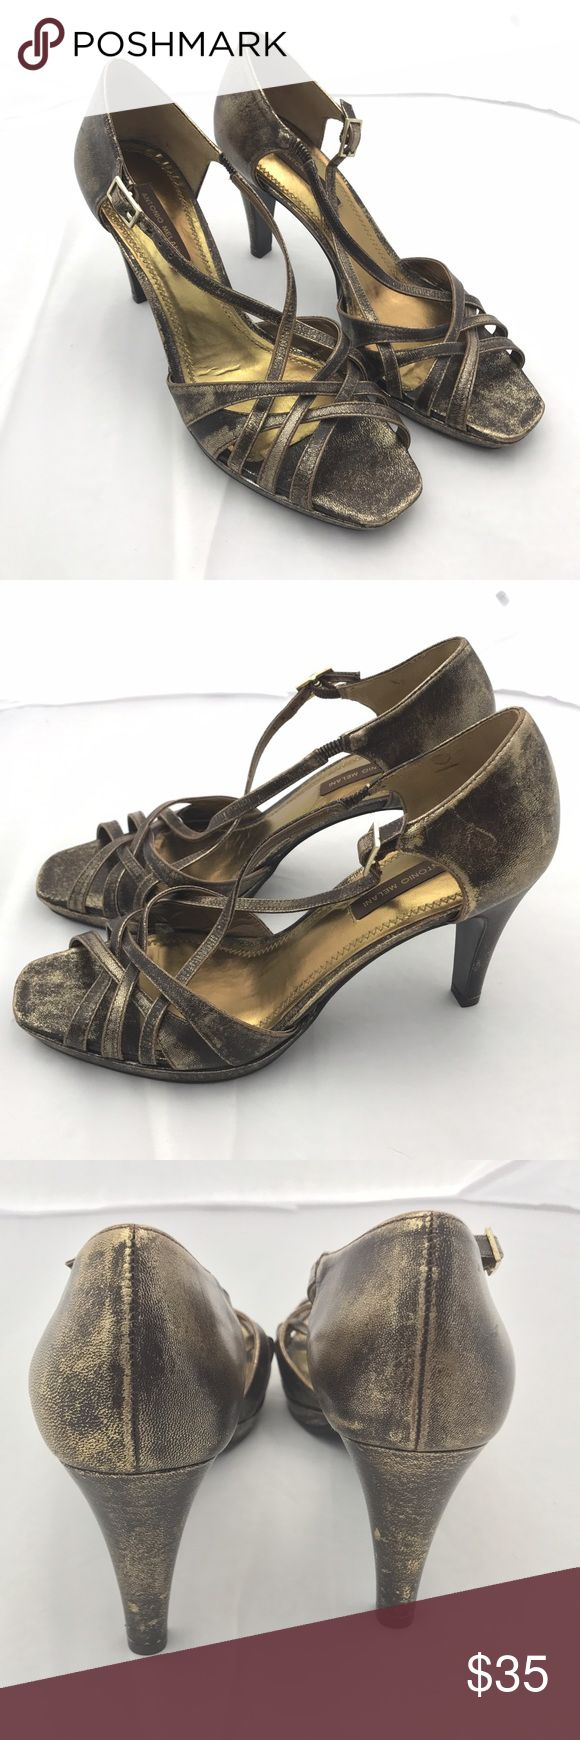 ANTONIO MELANI GOLD BROWN STRAPPY HEELS SIZE Gorgeous Antonio Melani high heels. SIZE 7.5 ANTONIO MELANI Shoes Heels